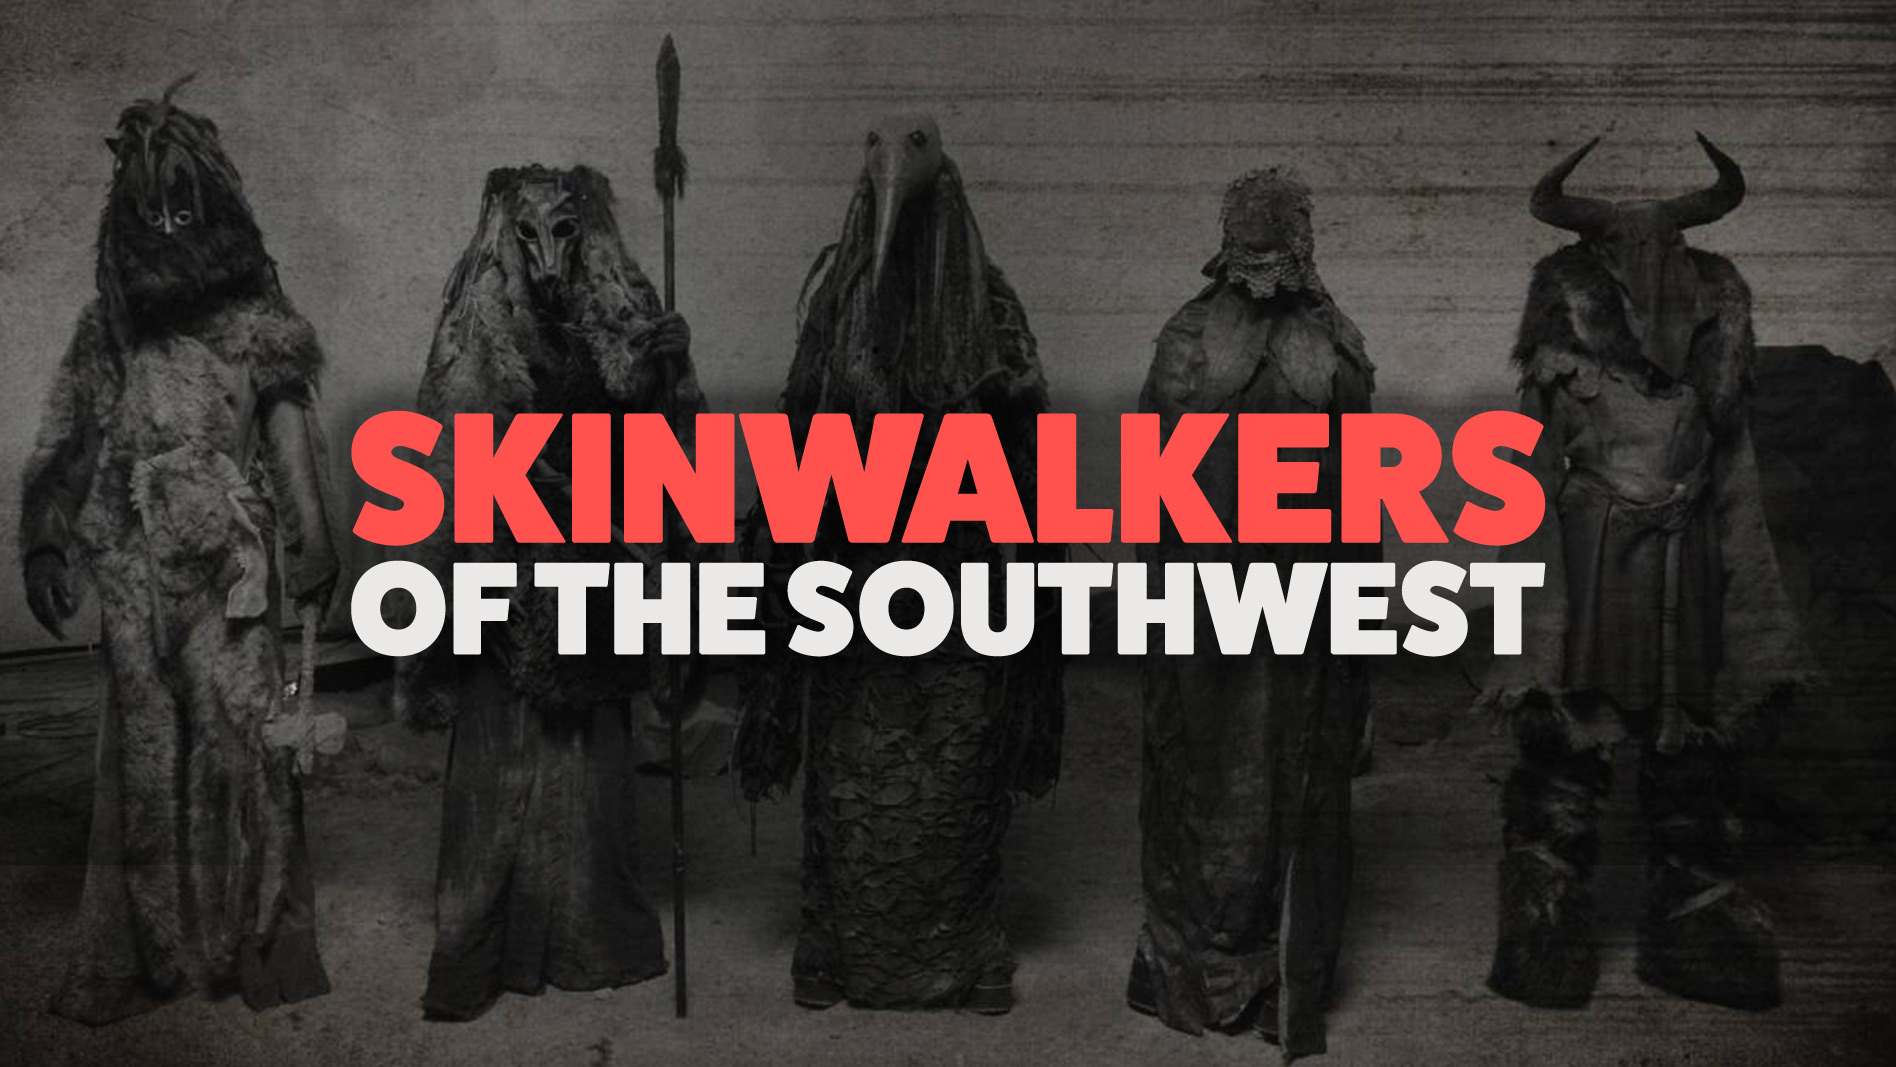 EXPANSION PREVIEW EPISODE | Skinwalkers: Dark Native Witchcraft and Monsters of the Southwest